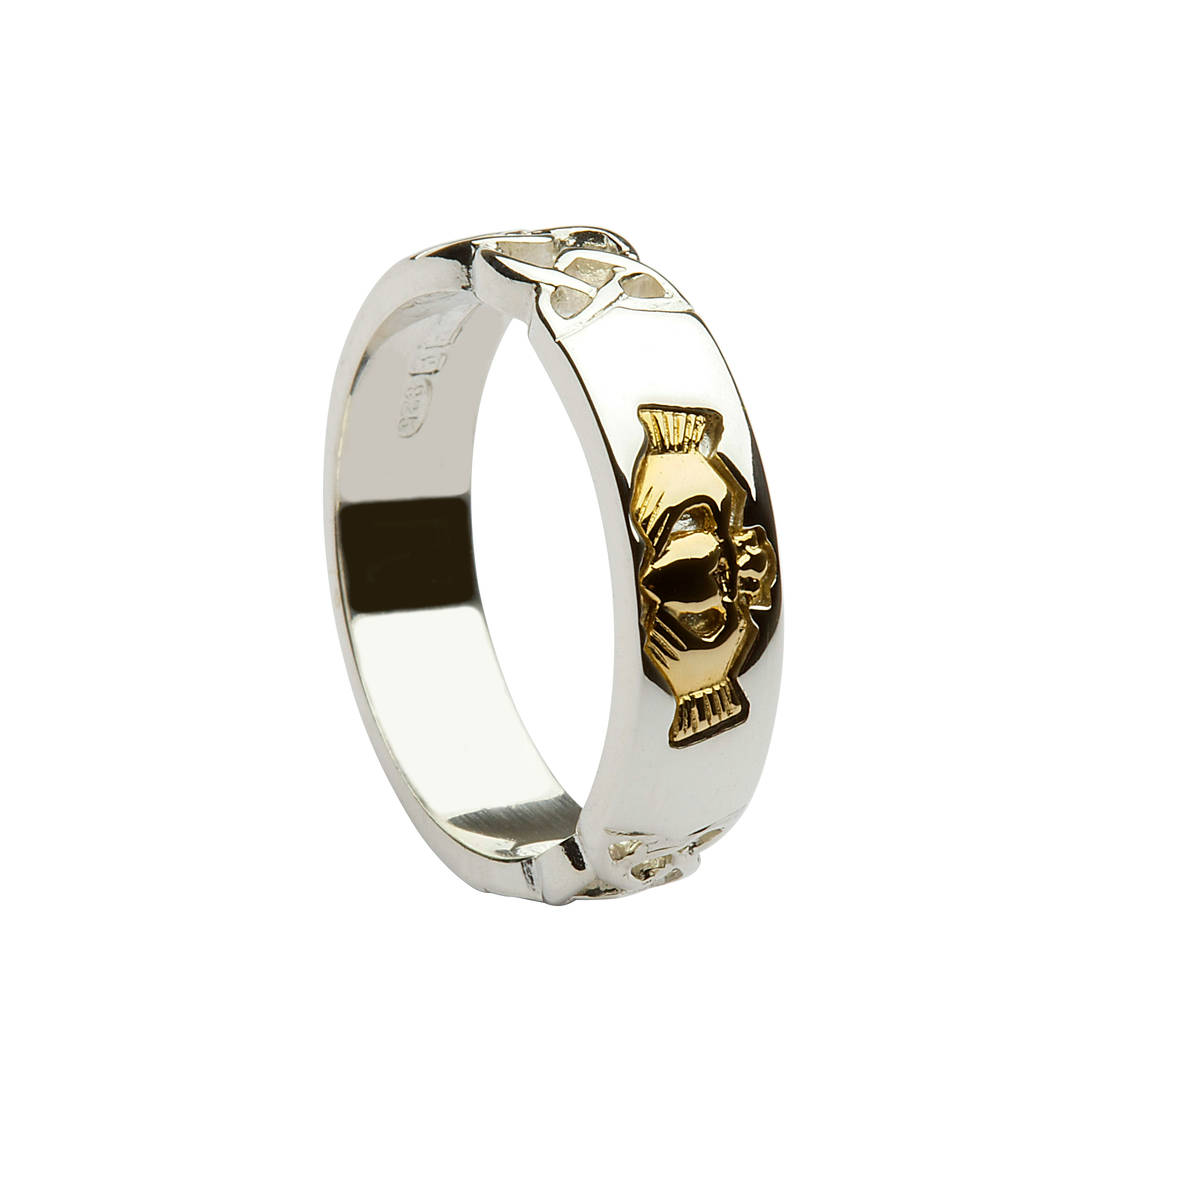 Silver ladies ring with celtic shoulders and 14 carat gold claddagh inlaid.